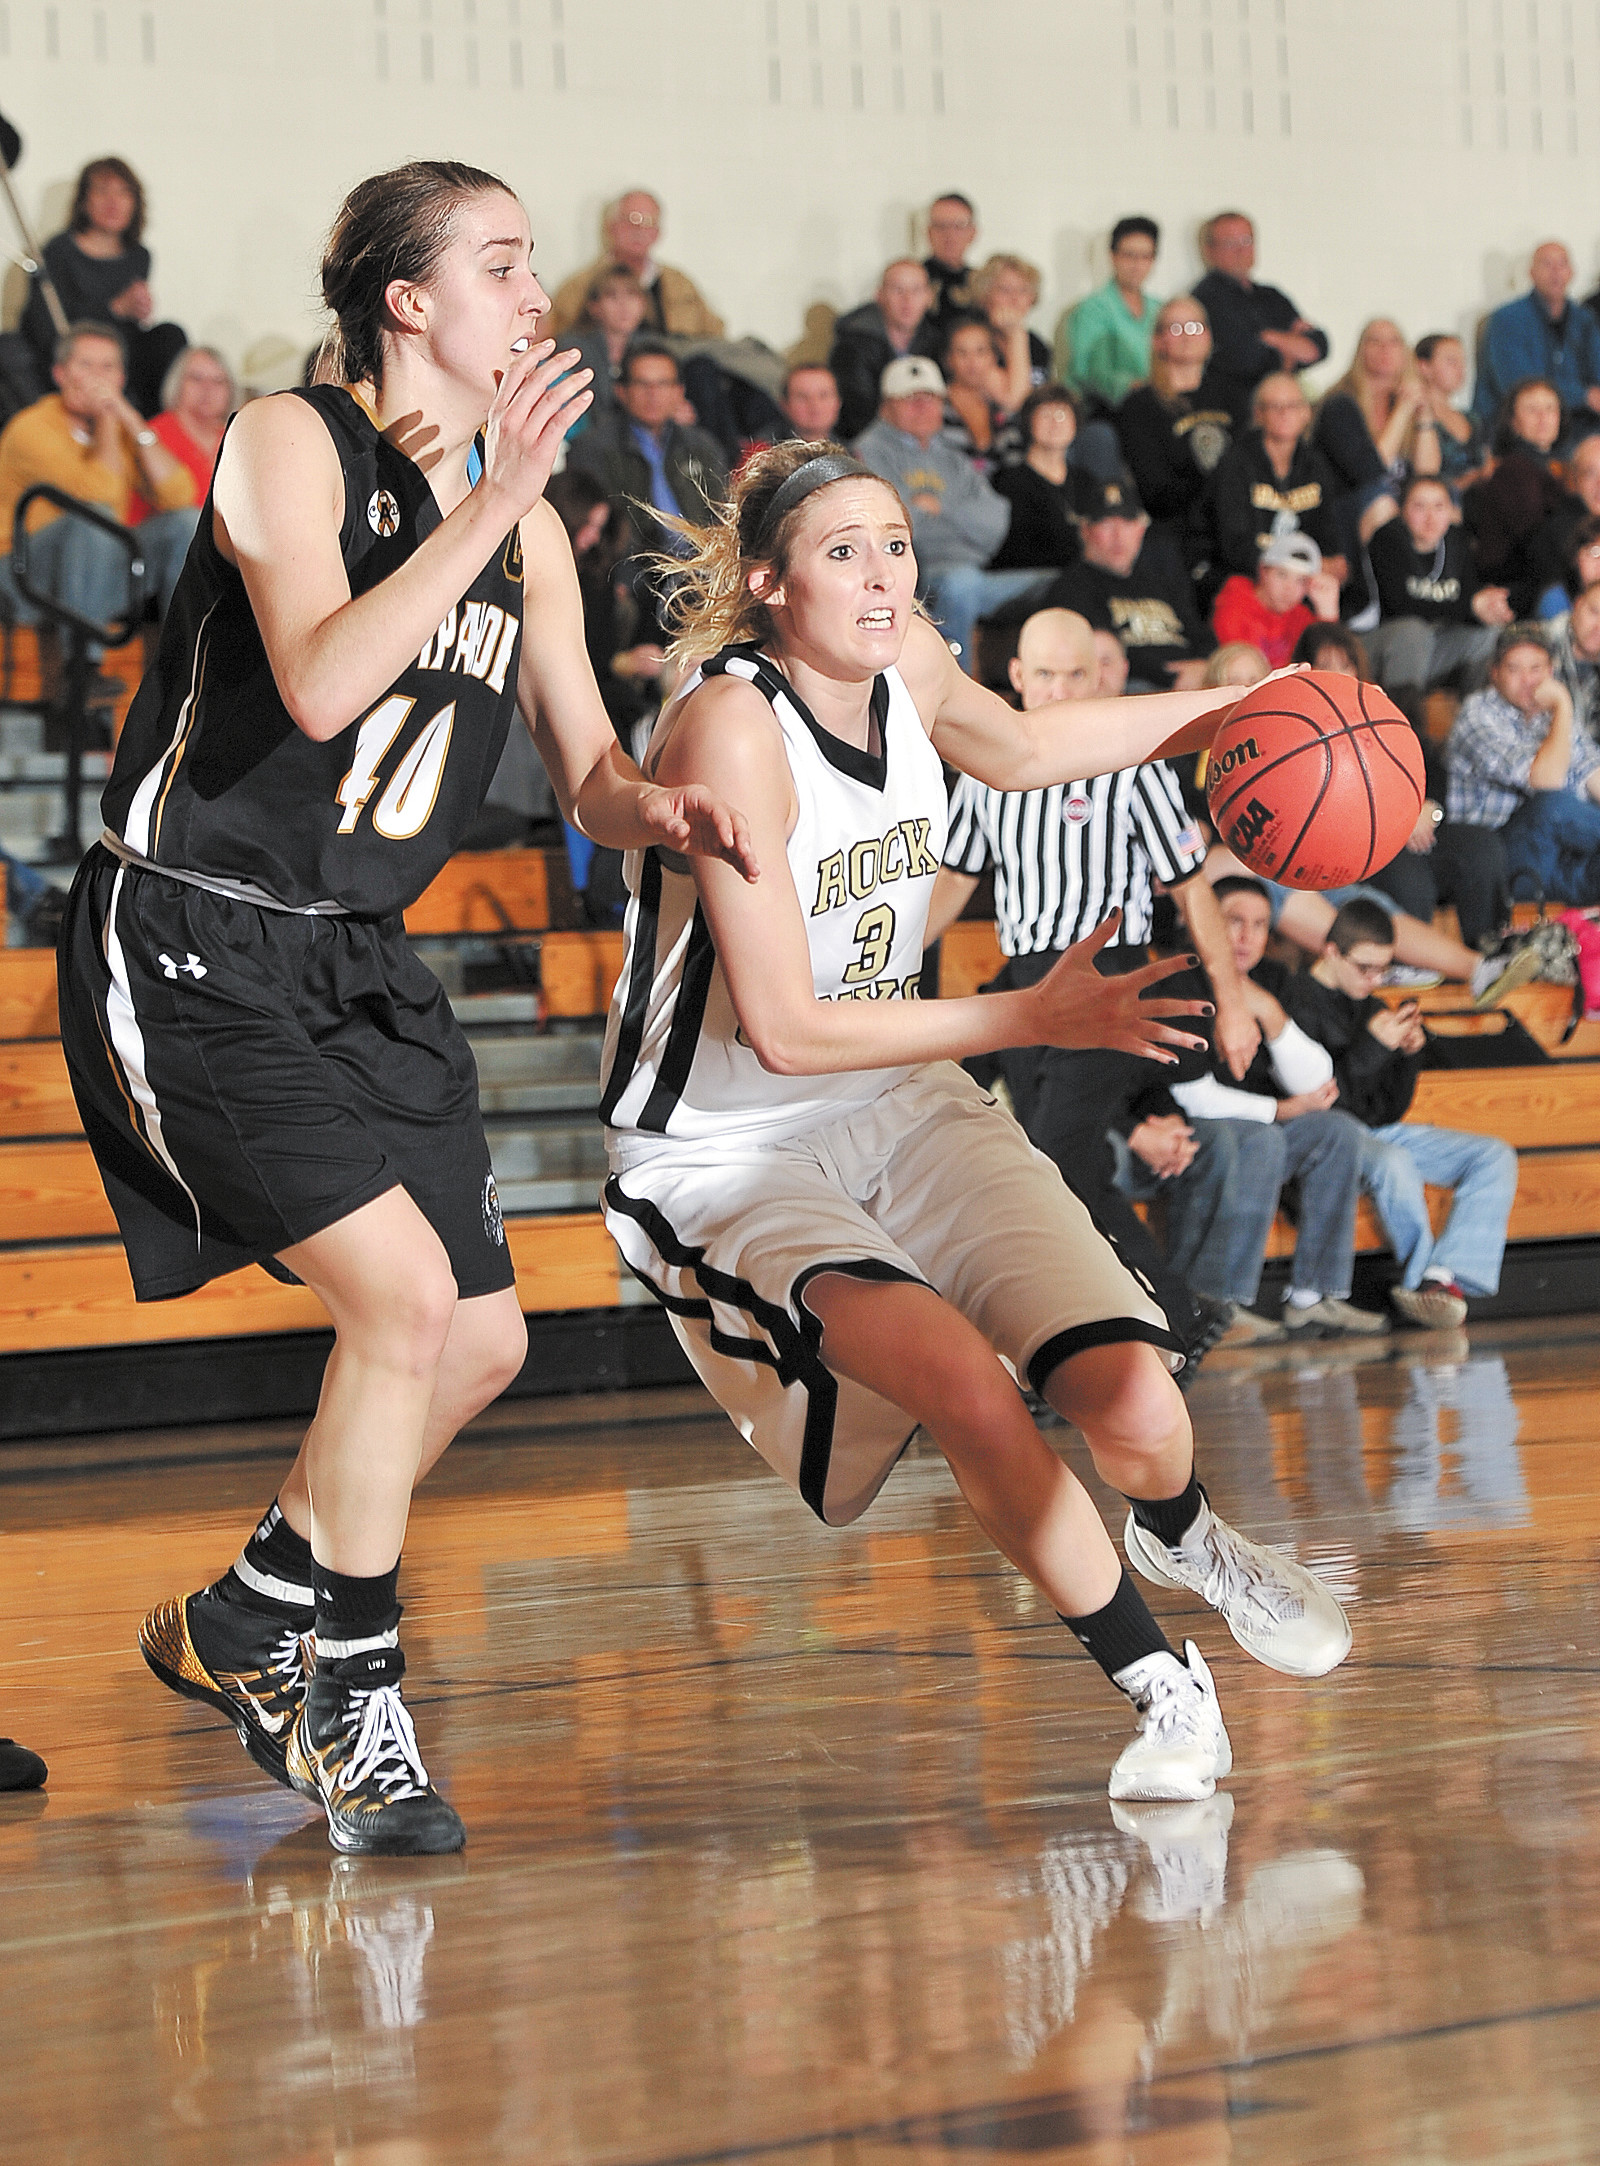 Rock Canyon's Kendall Koslosky, right, looks to pass the ball to a teammate during the Jaguars' 60-44 win over Arapahoe Feb. 28 in the seco